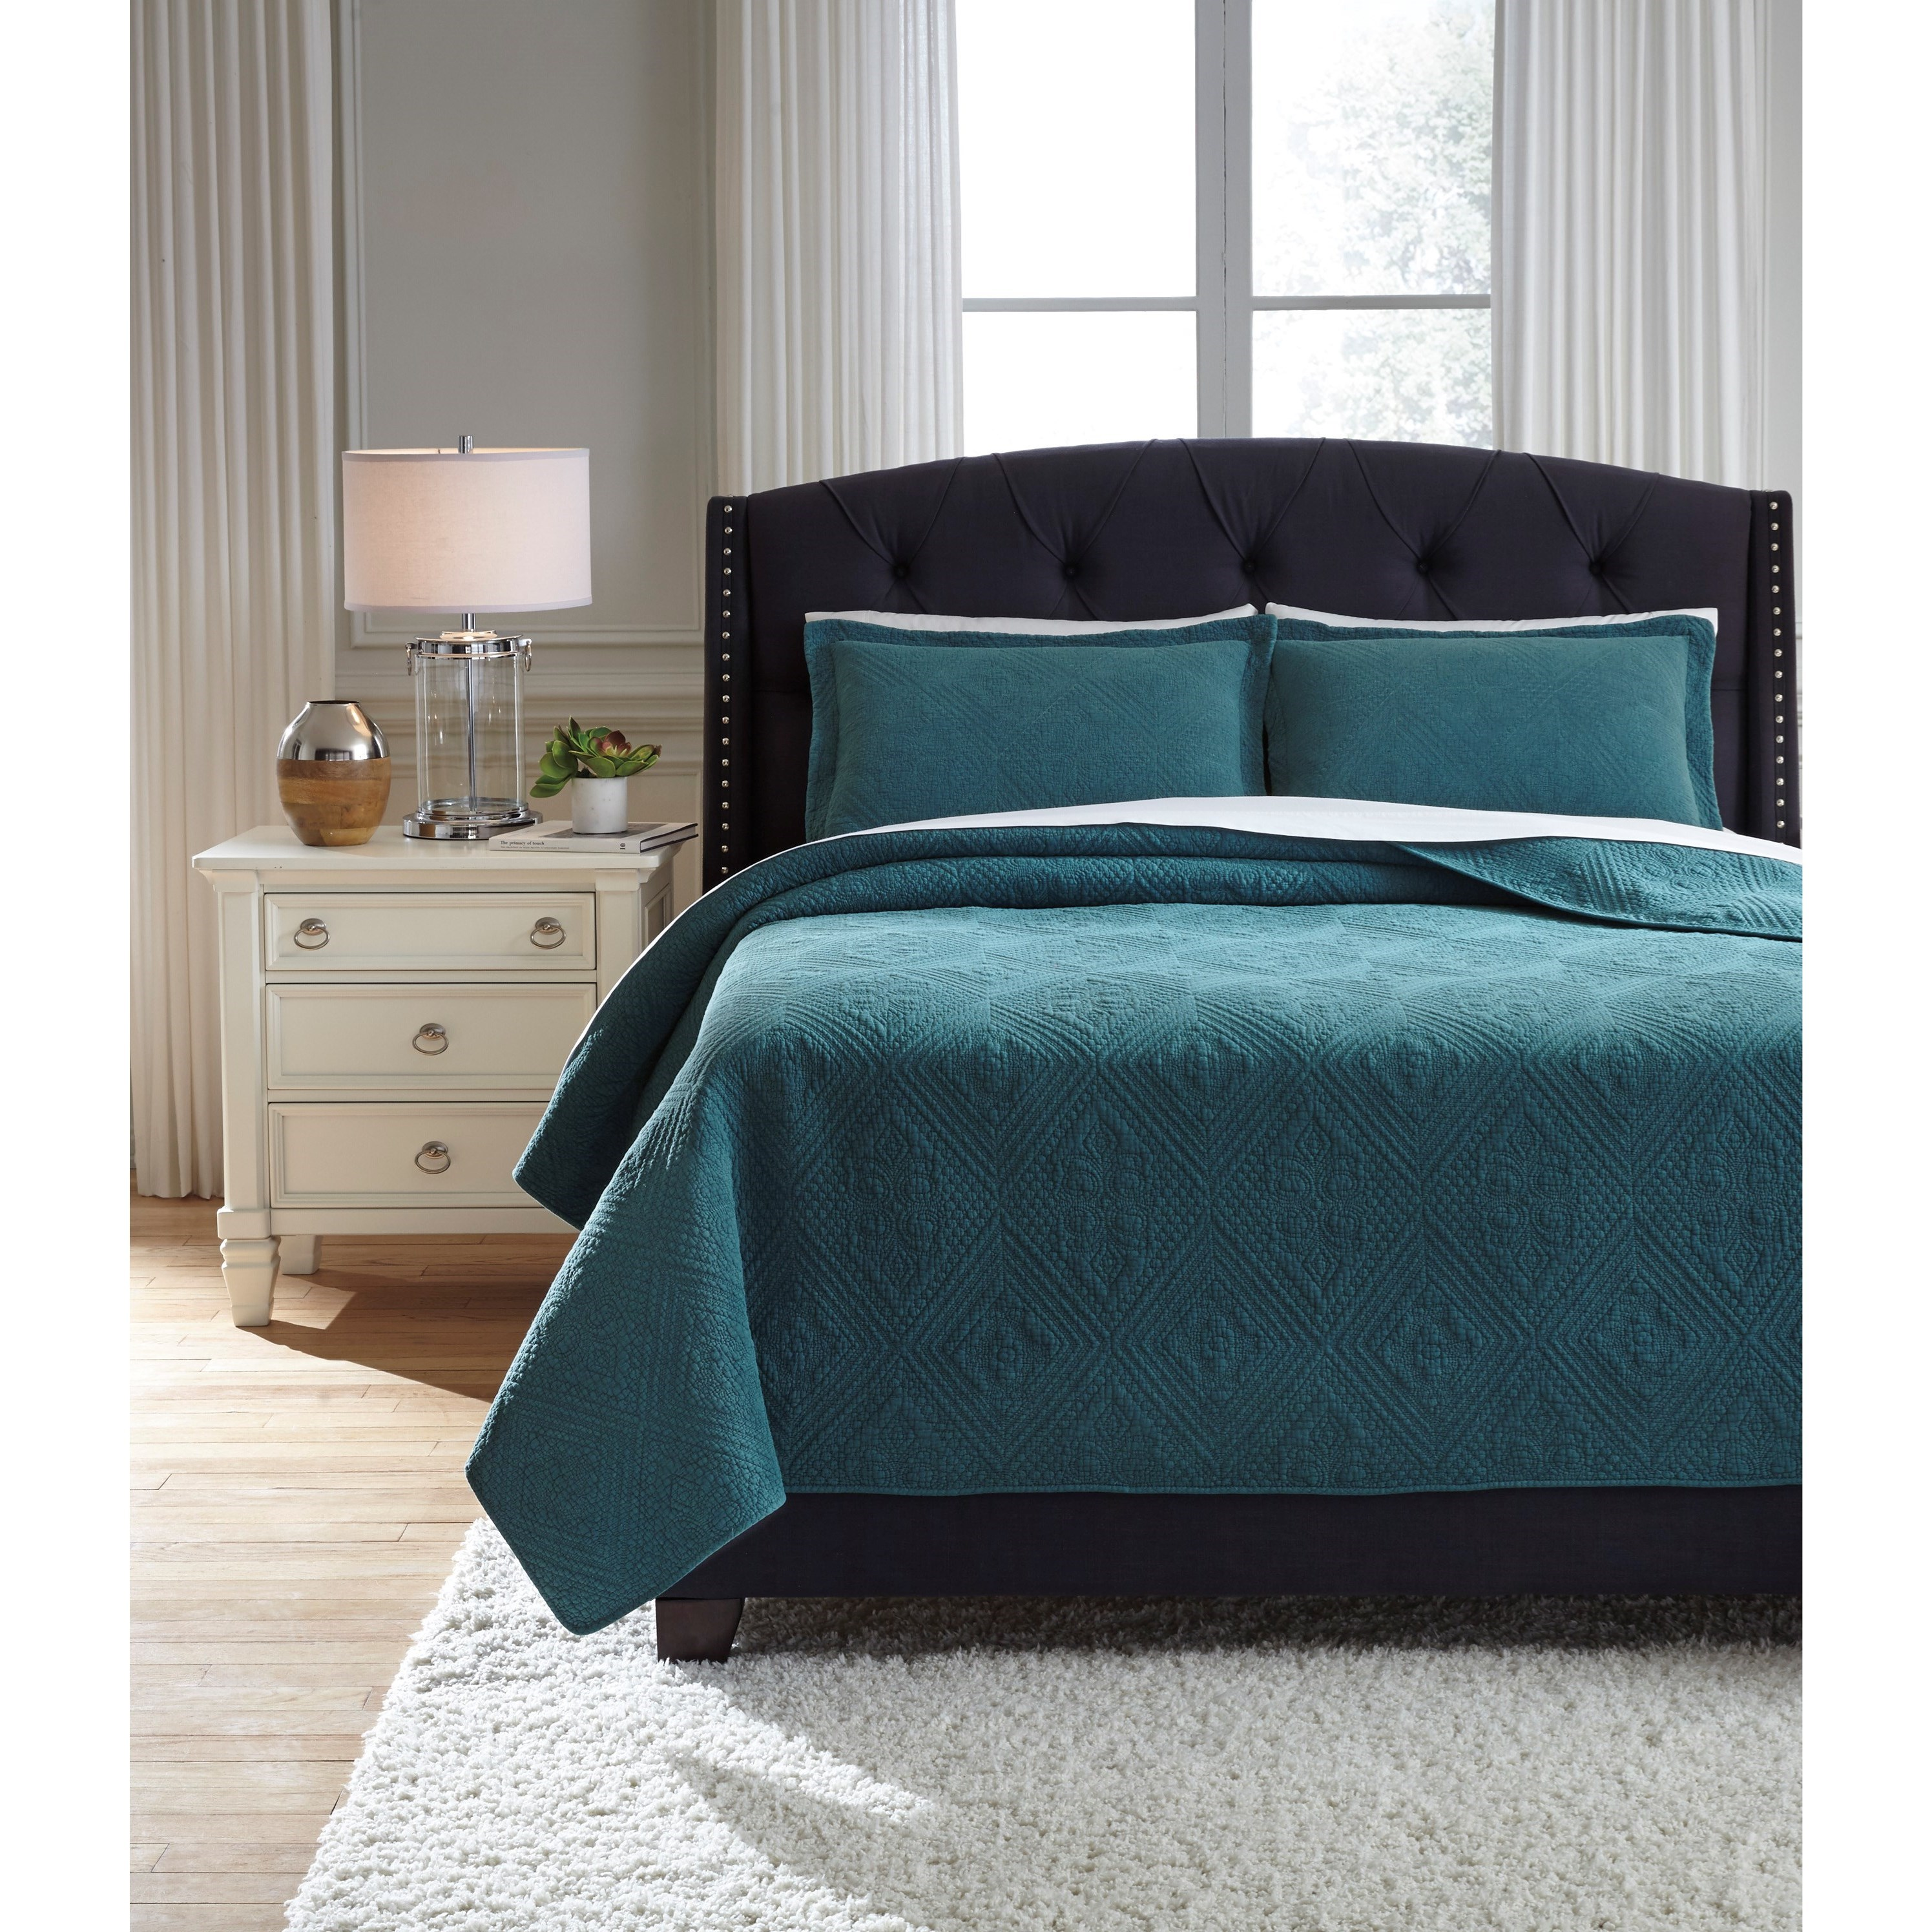 Bedding Sets Queen Minette Teal Quilt Set by Signature Design by Ashley at Lapeer Furniture & Mattress Center